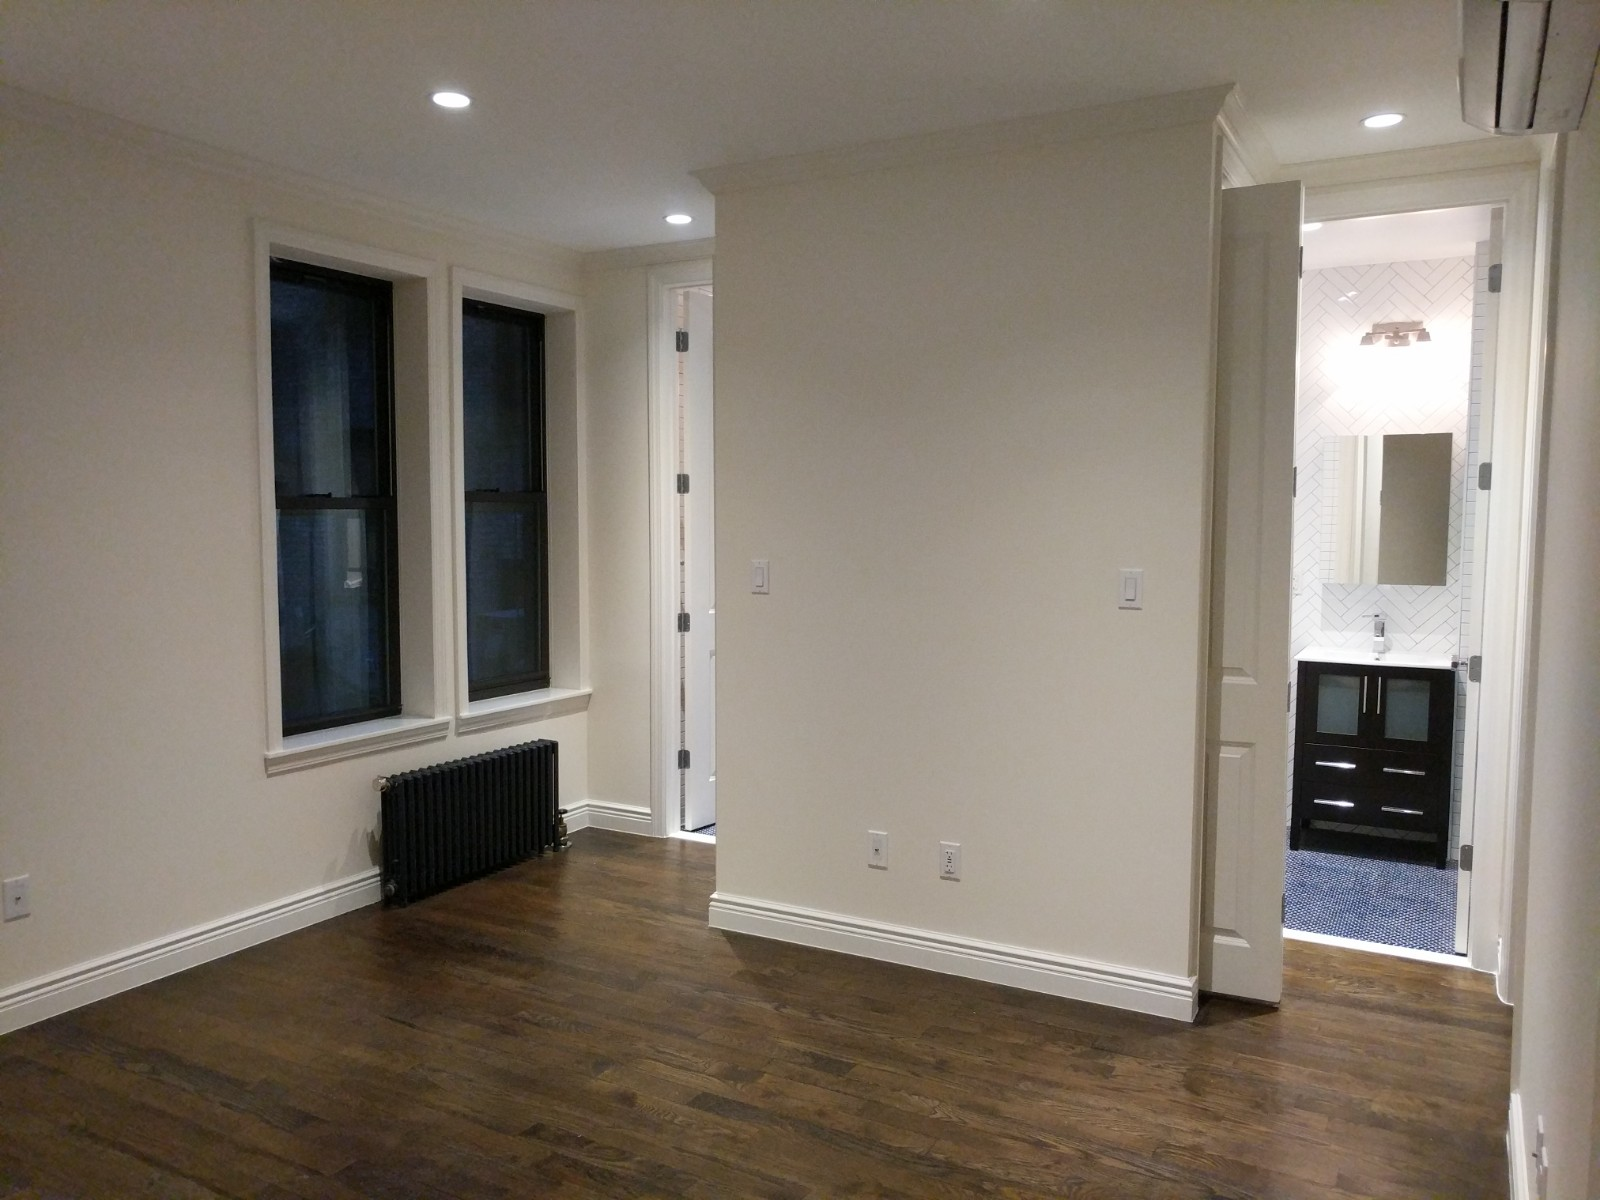 $950/mo Single Room in Beautiful New York City Luxury Apartment for rent